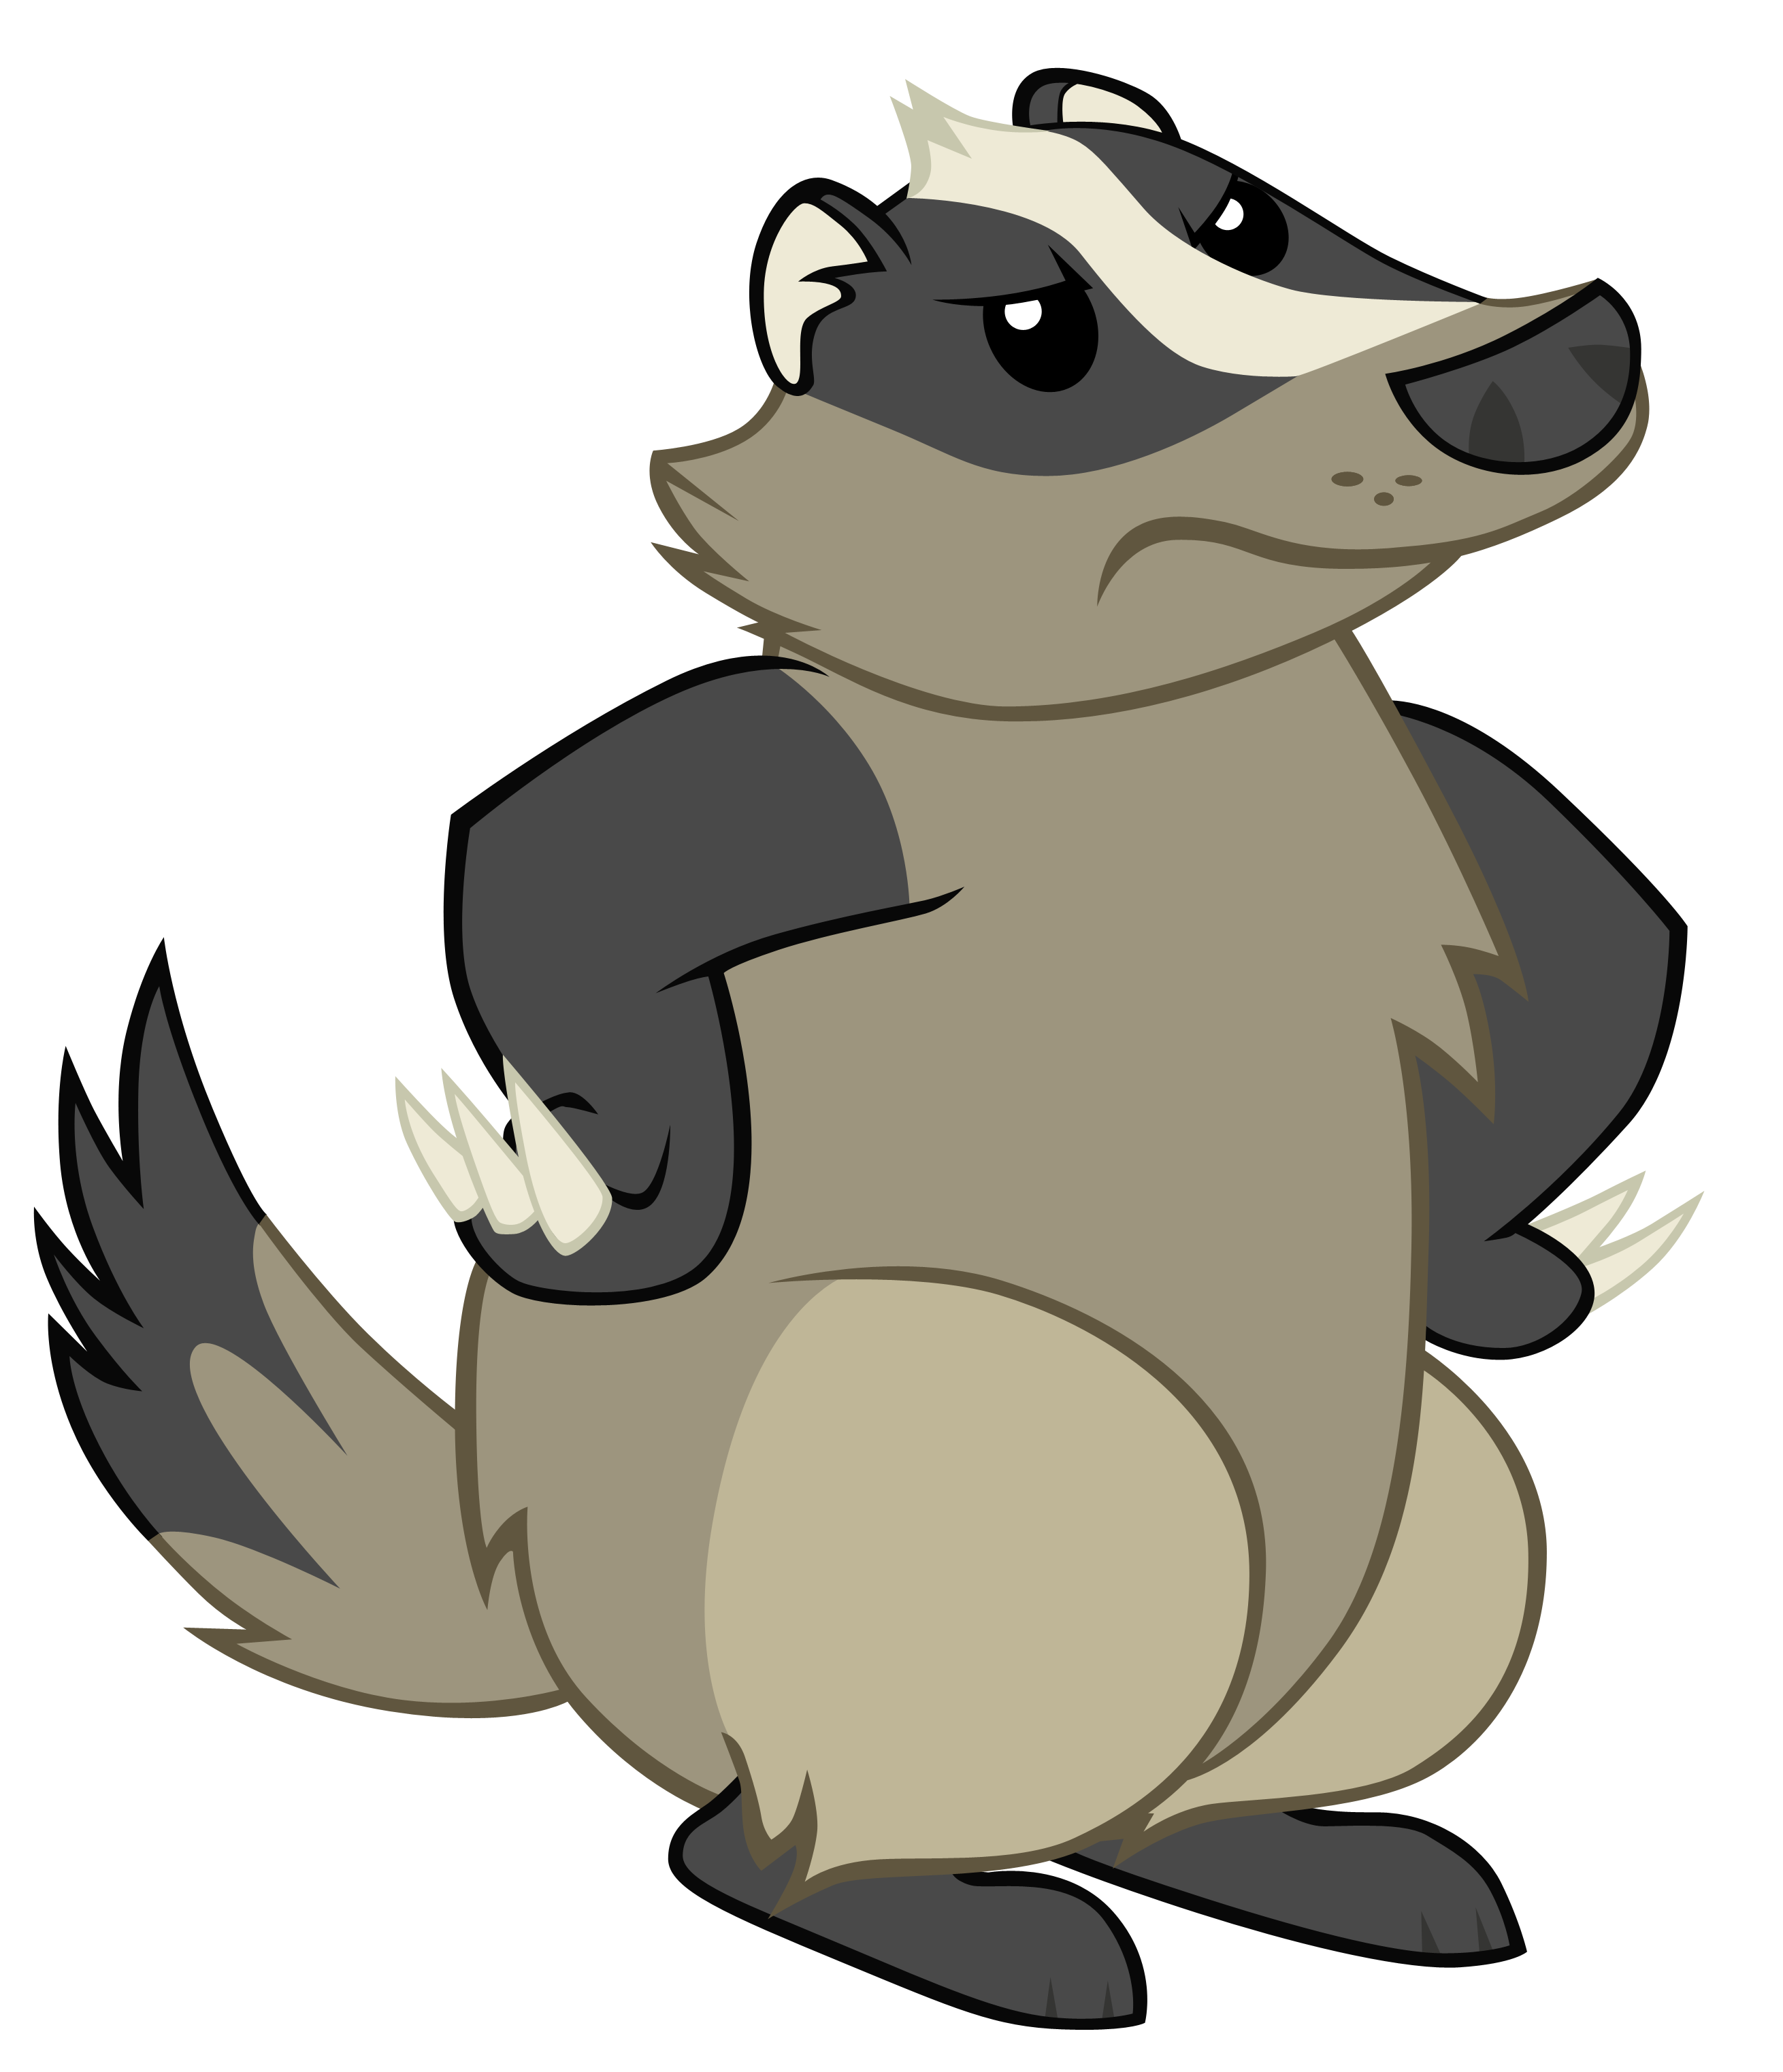 clip library library Badger clipart animated. Pencil and in color